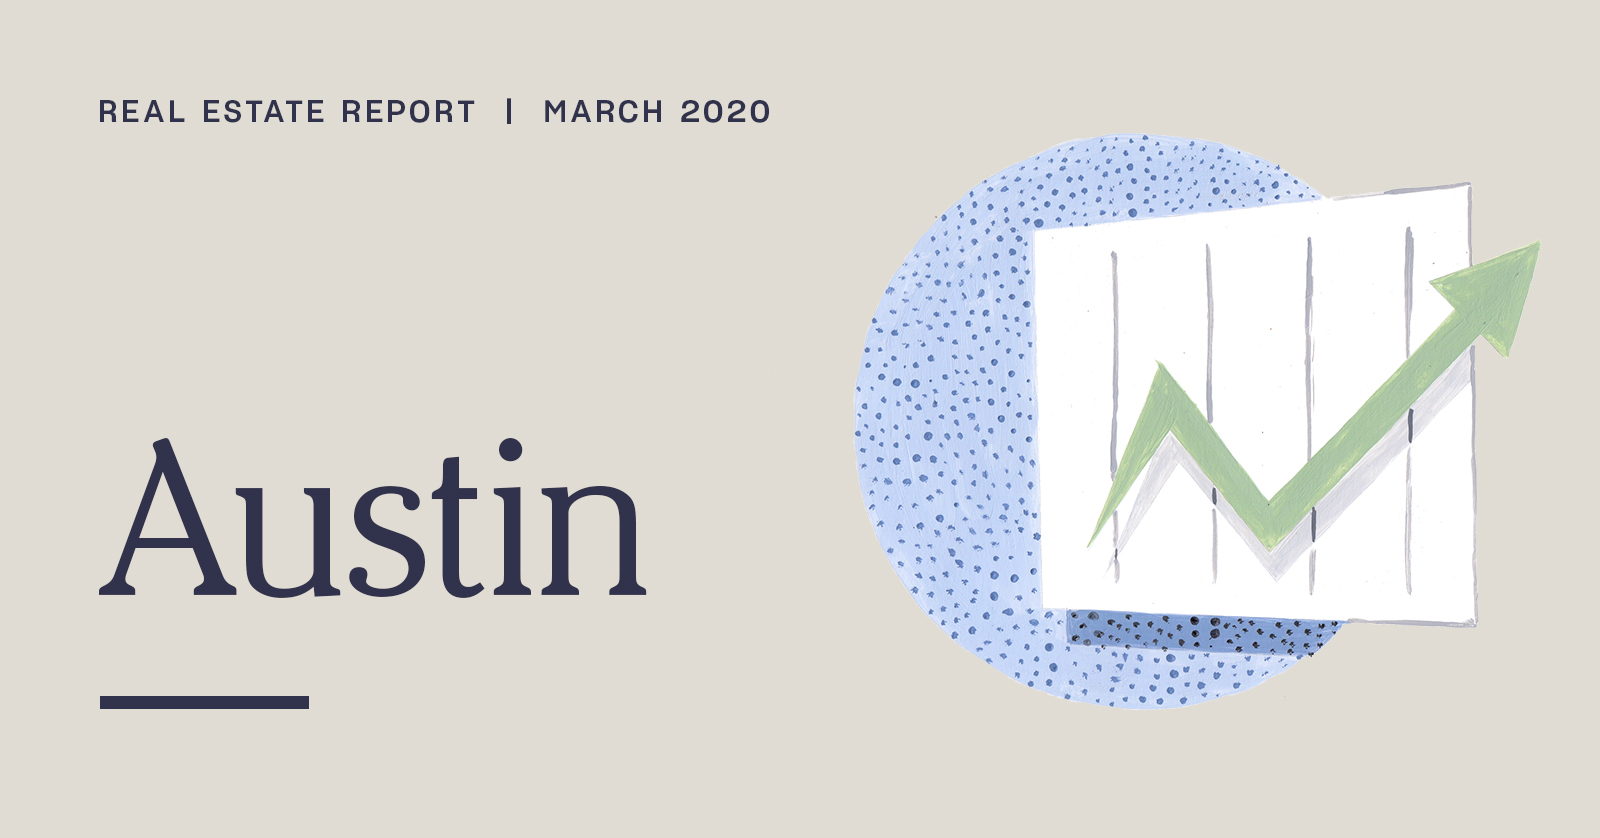 Austin Real Estate Report | March 2020